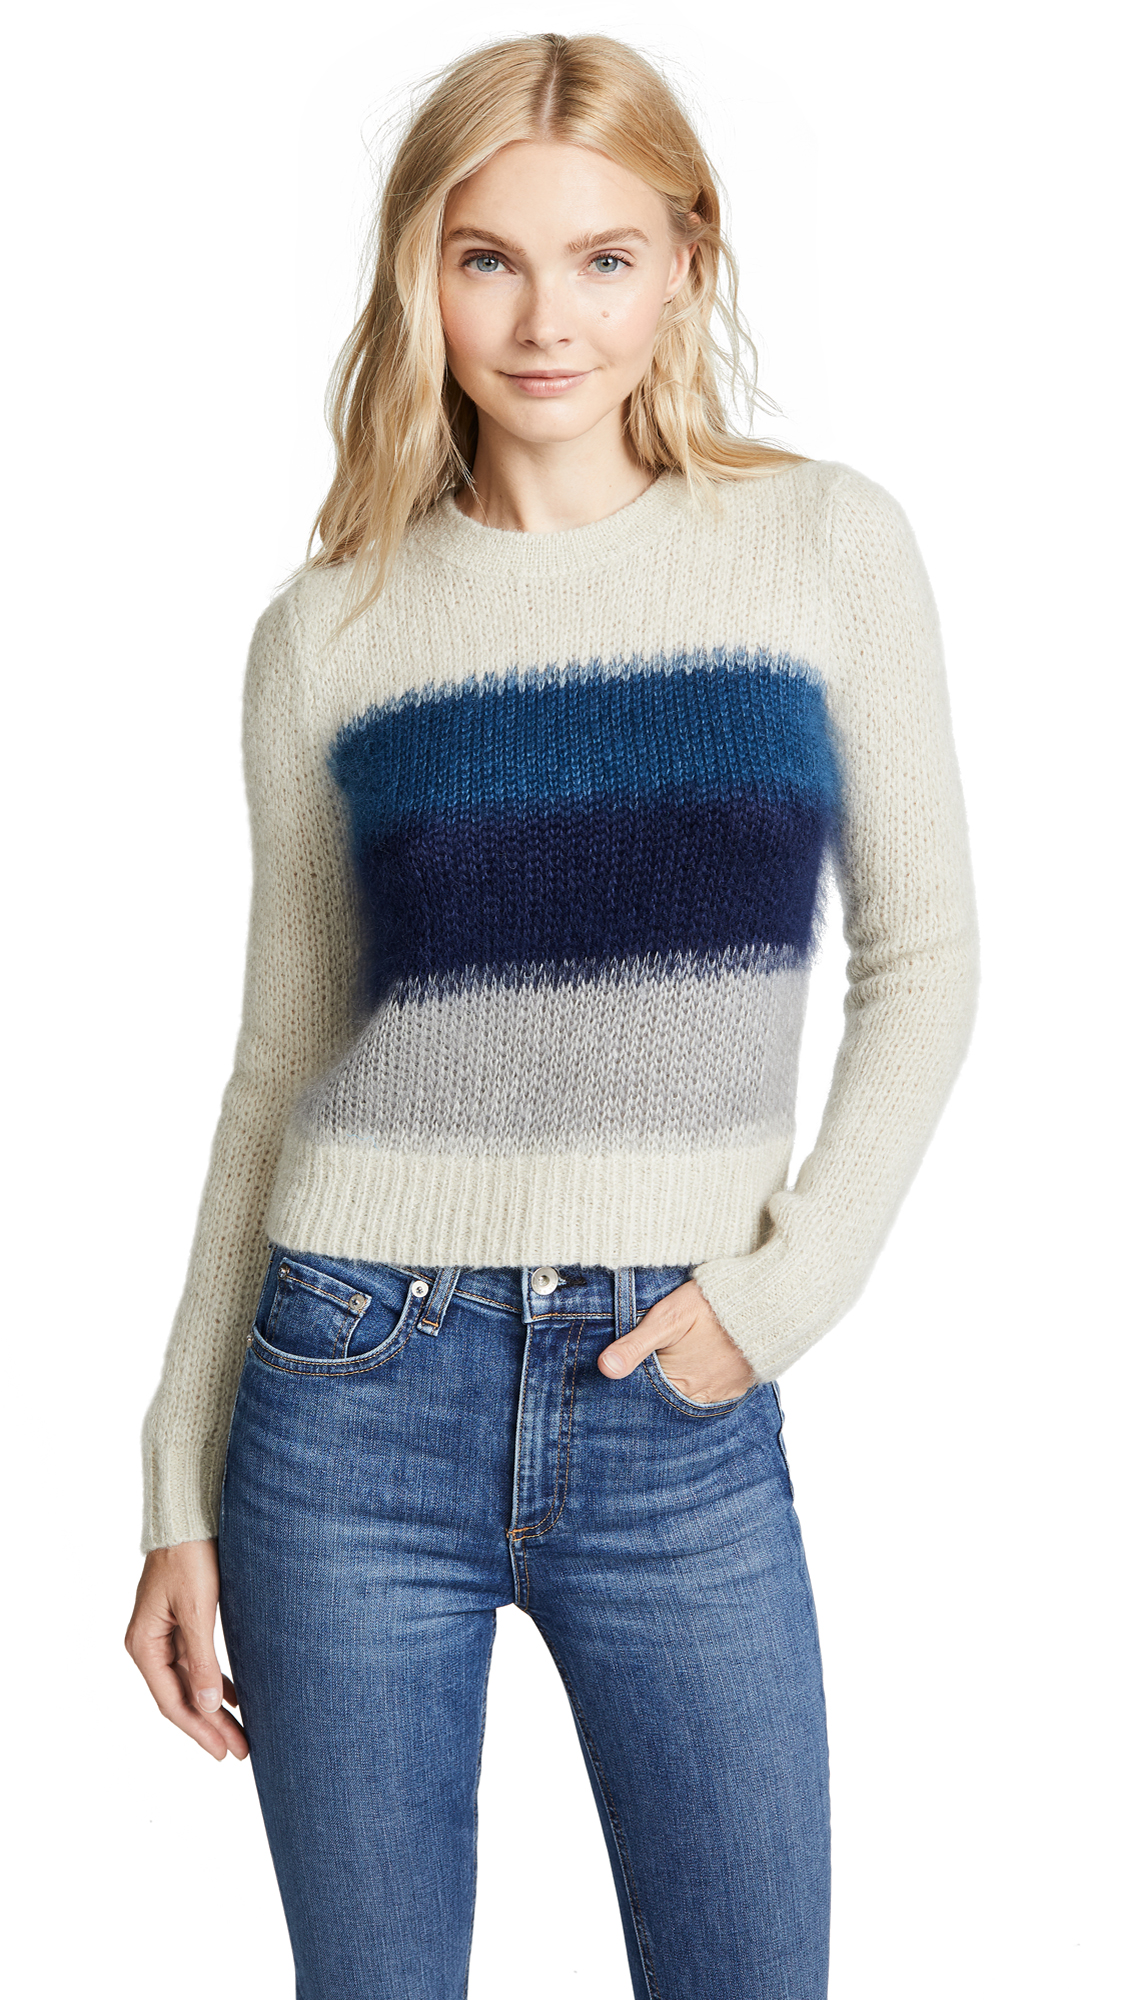 Rag & Bone Holland Sweater In Ivory/Blue